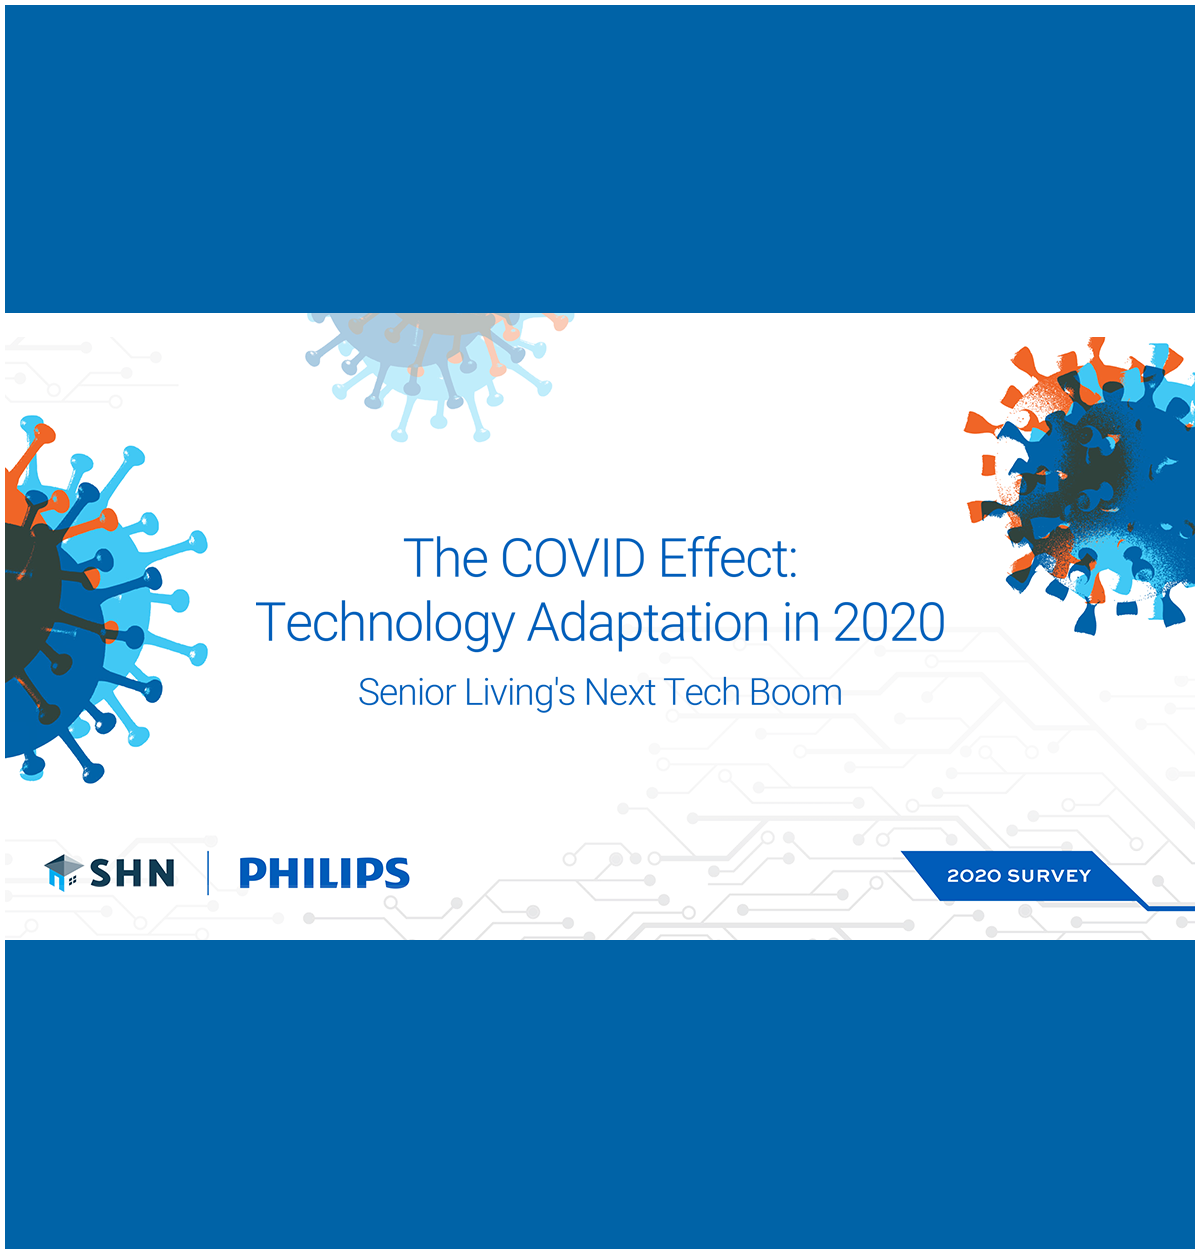 The COVID Effect: Technology Adaptation in 2020